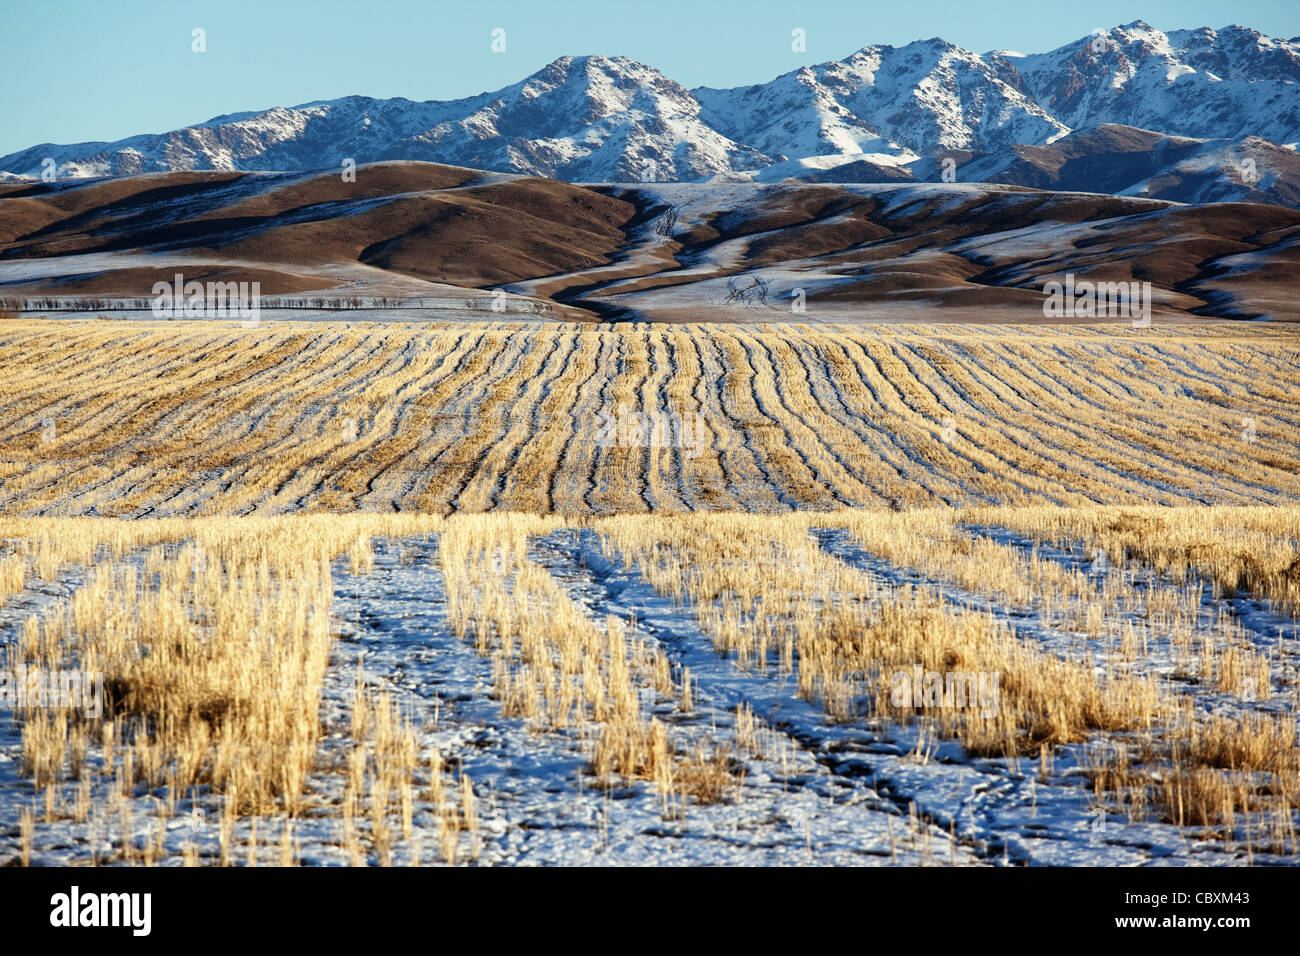 First snow on the fields and mountains Stock Photo